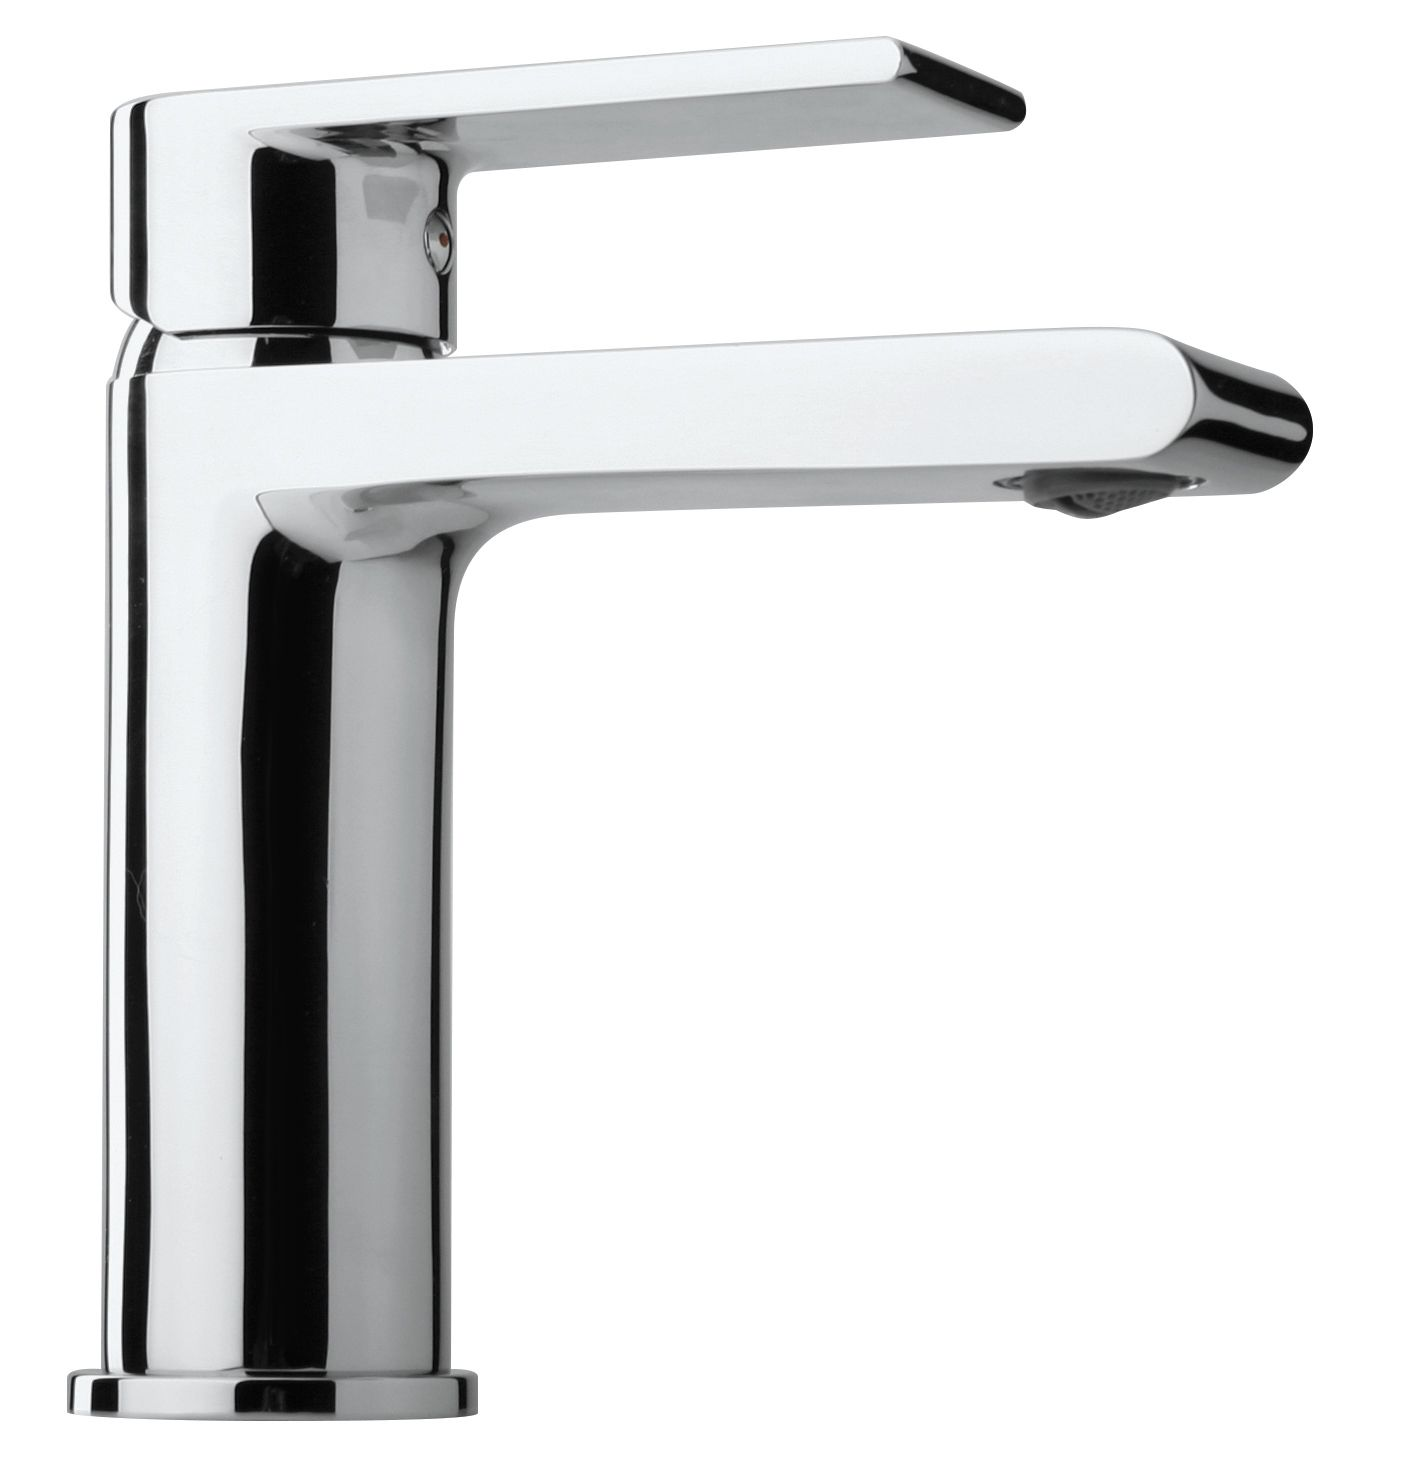 Ghibli basin mixer without pop up waste 44CR205 | P A I N I ...